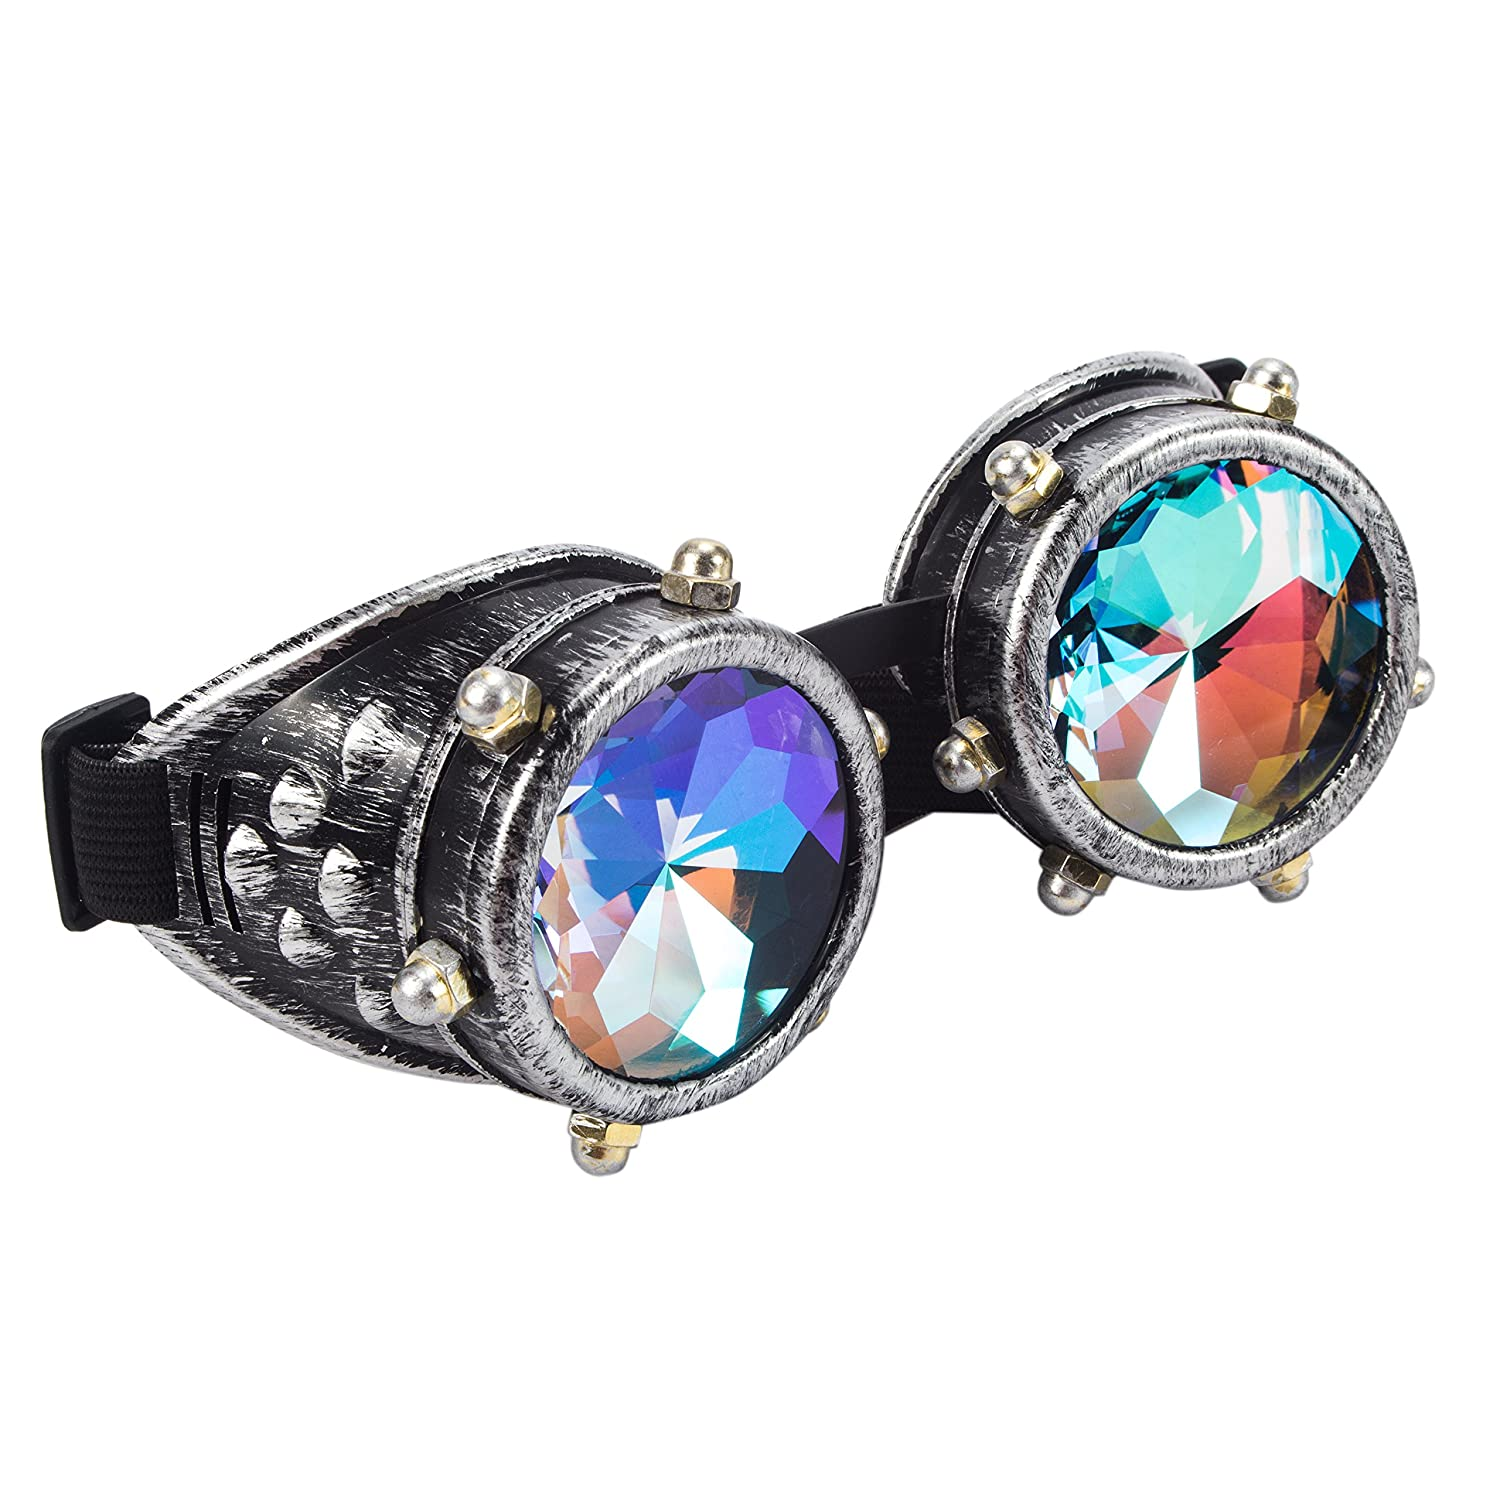 4daed53c4a30 Buy Kaleidoscope Rave Goggles Steampunk Glasses with Rainbow Crystal Glass  Lens Online at Low Prices in India - Amazon.in